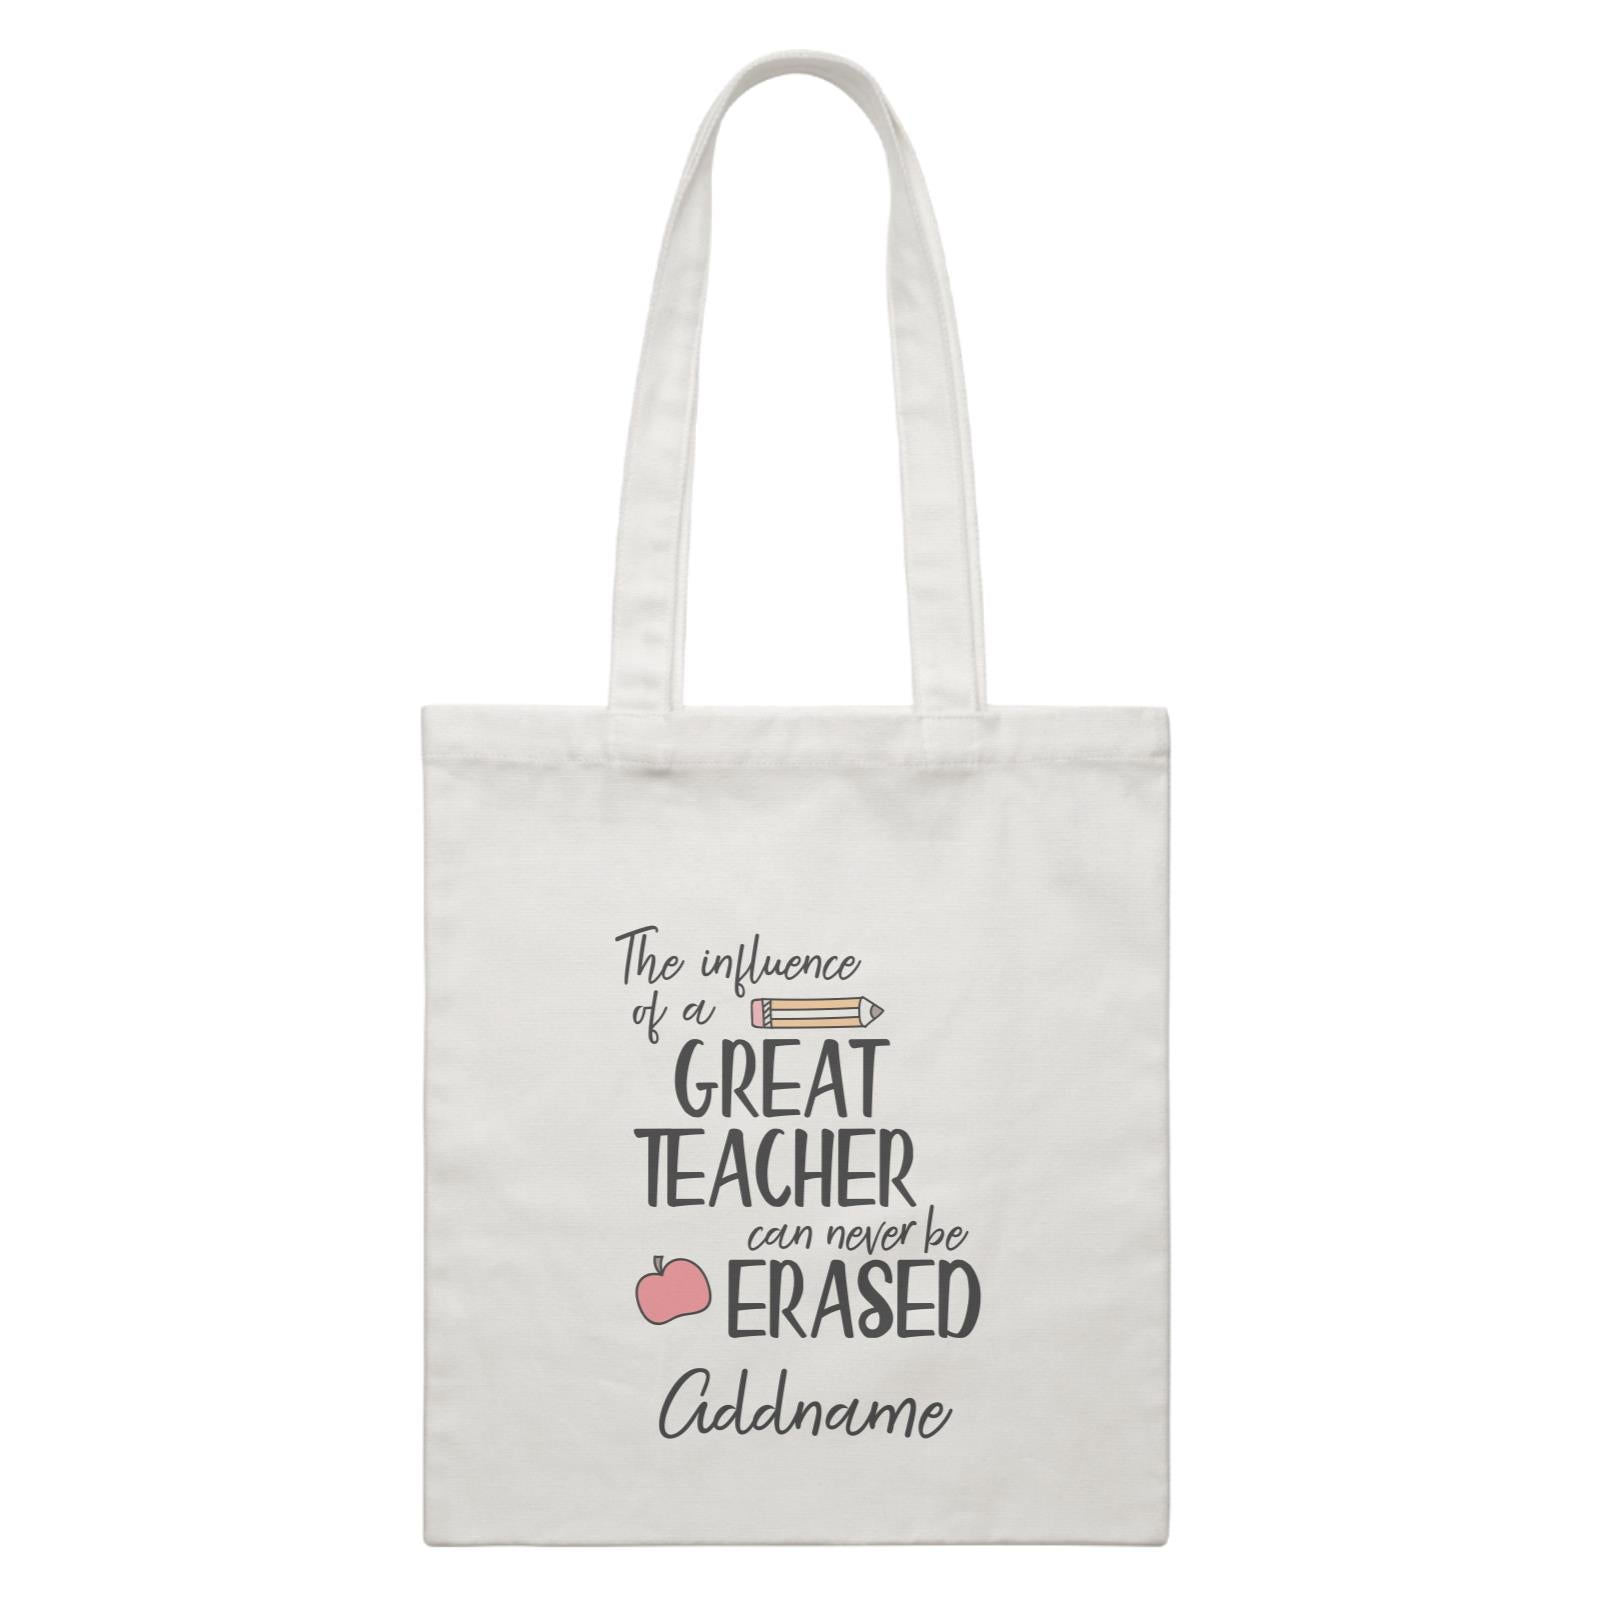 Teacher Quotes The Influence Of A Great Teacher Can Never Be Erased Addname White Canvas Bag